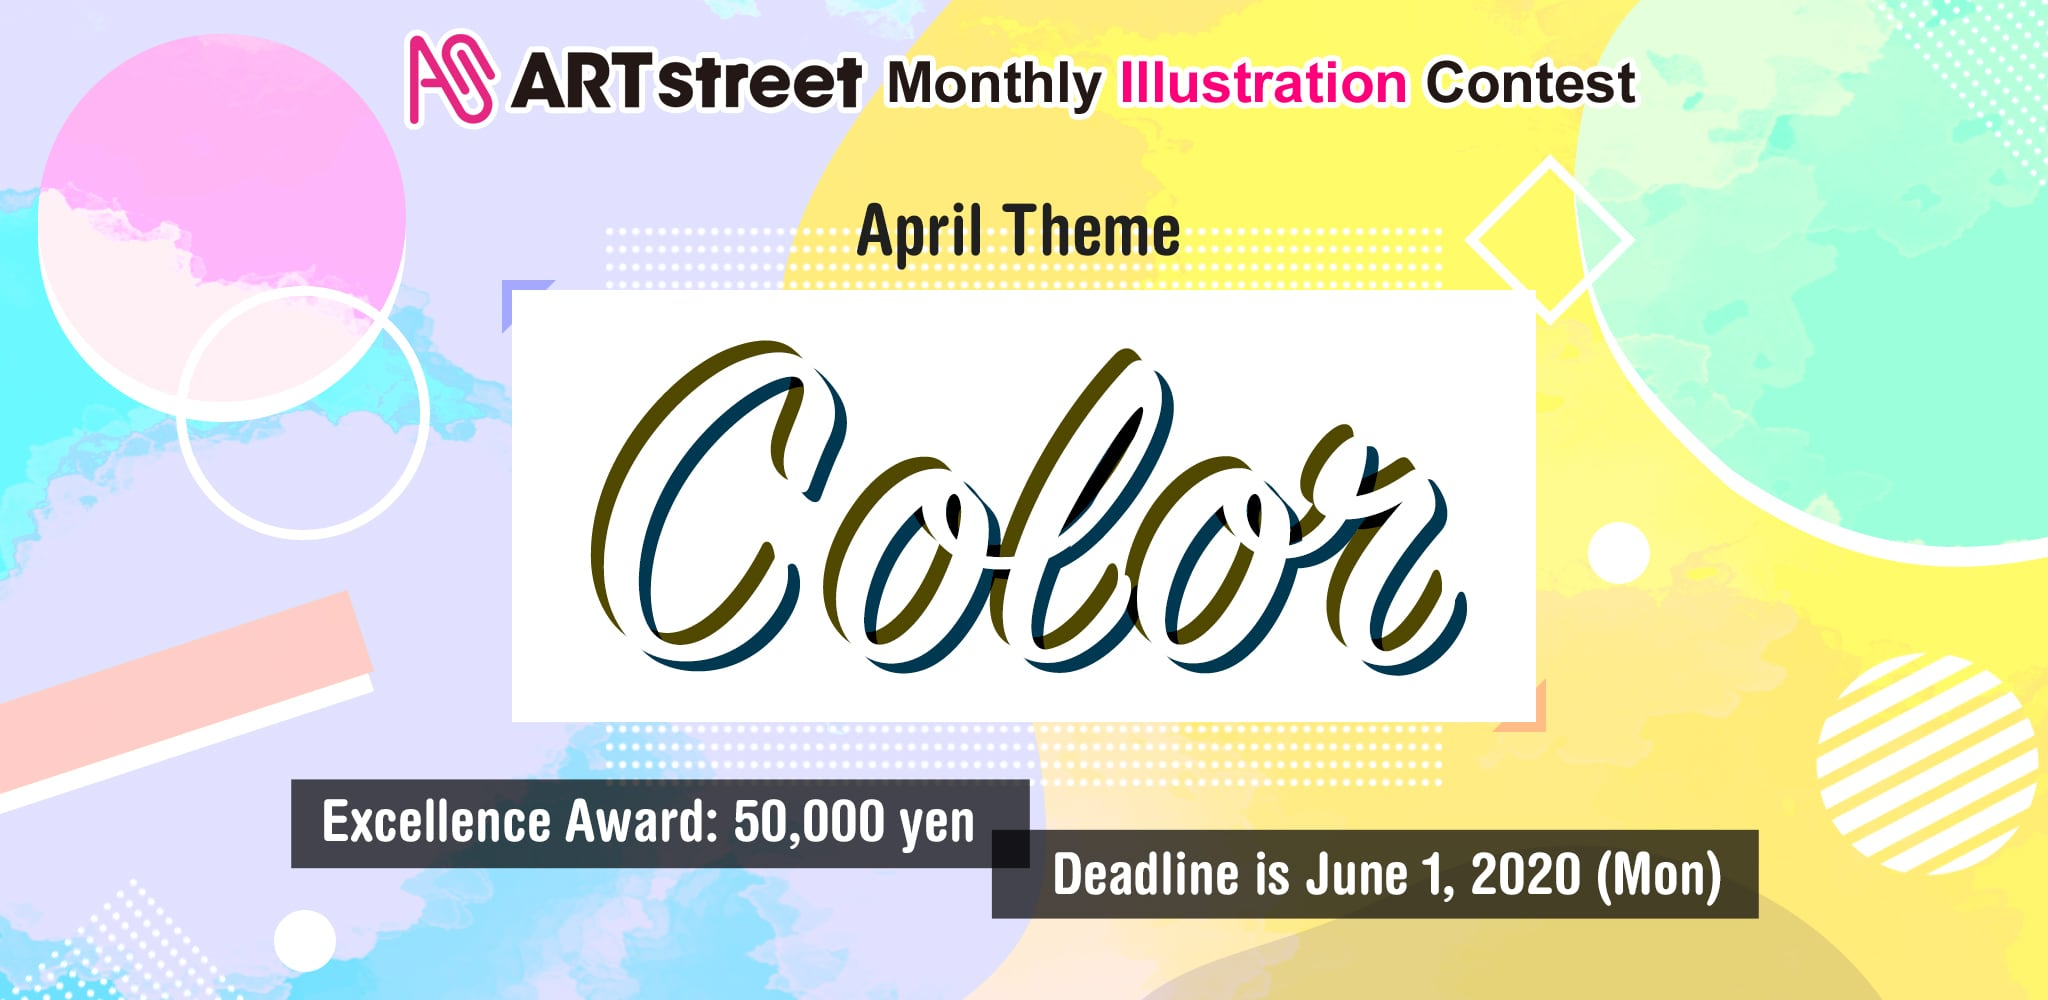 ART street Monthly Illustration Contest April Theme: Color| Contest - ART street by MediBang